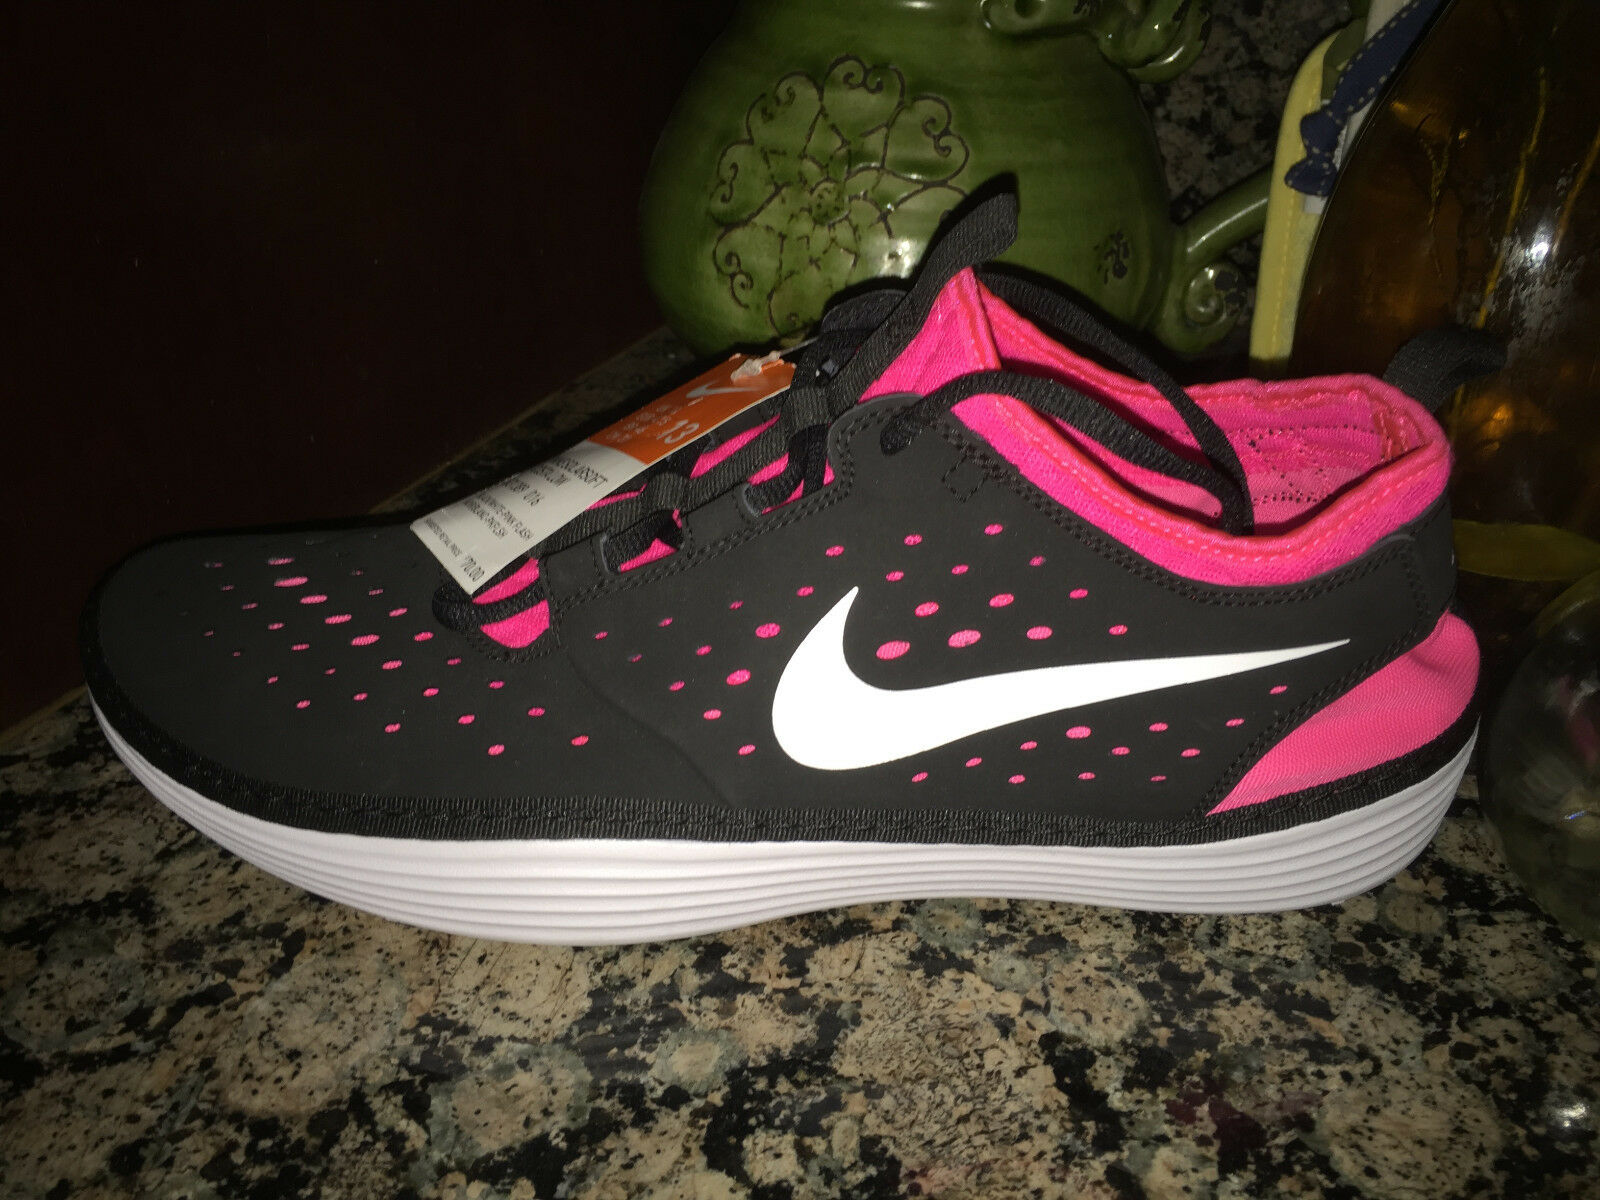 NEW NIKE Solarsoft Costa Low Mens Casual shoes Black White Pink 13